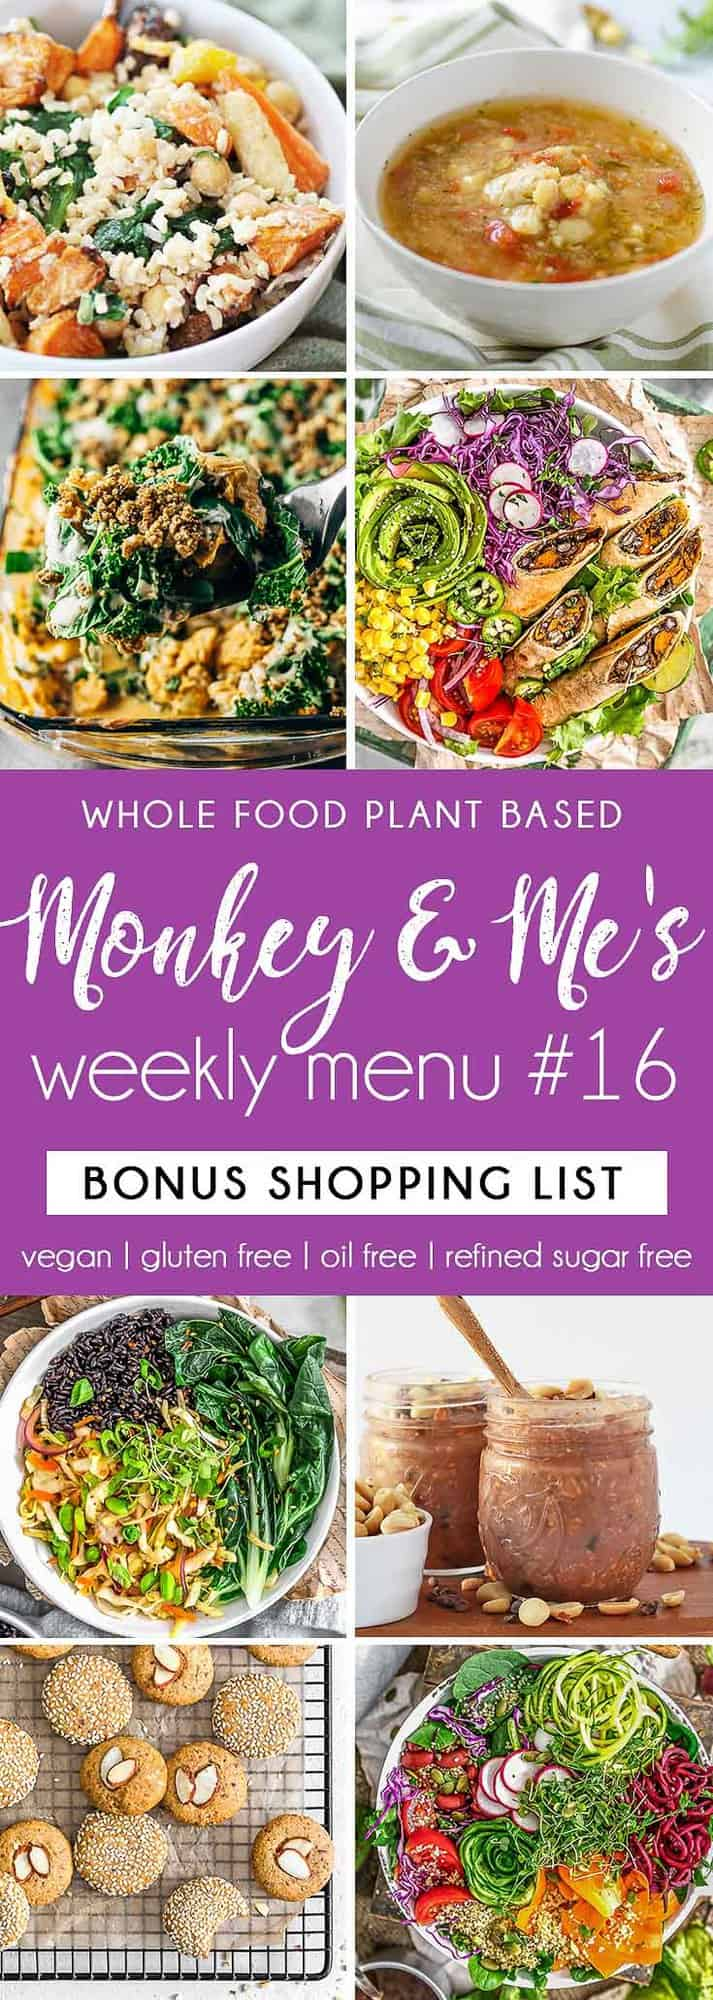 Monkey and Me's Menu, Menu 16, weekly recipe plan, menu, planner, plant based, vegan, vegetarian, whole food plant based, gluten free, recipe, wfpb, healthy, healthy vegan, oil free, no refined sugar, no oil, refined sugar free, dairy free, dinner, lunch, menu, plant based menu, vegan menu, weekly menu, meal plan, vegan meal plan, plant based meal plan, shopping list